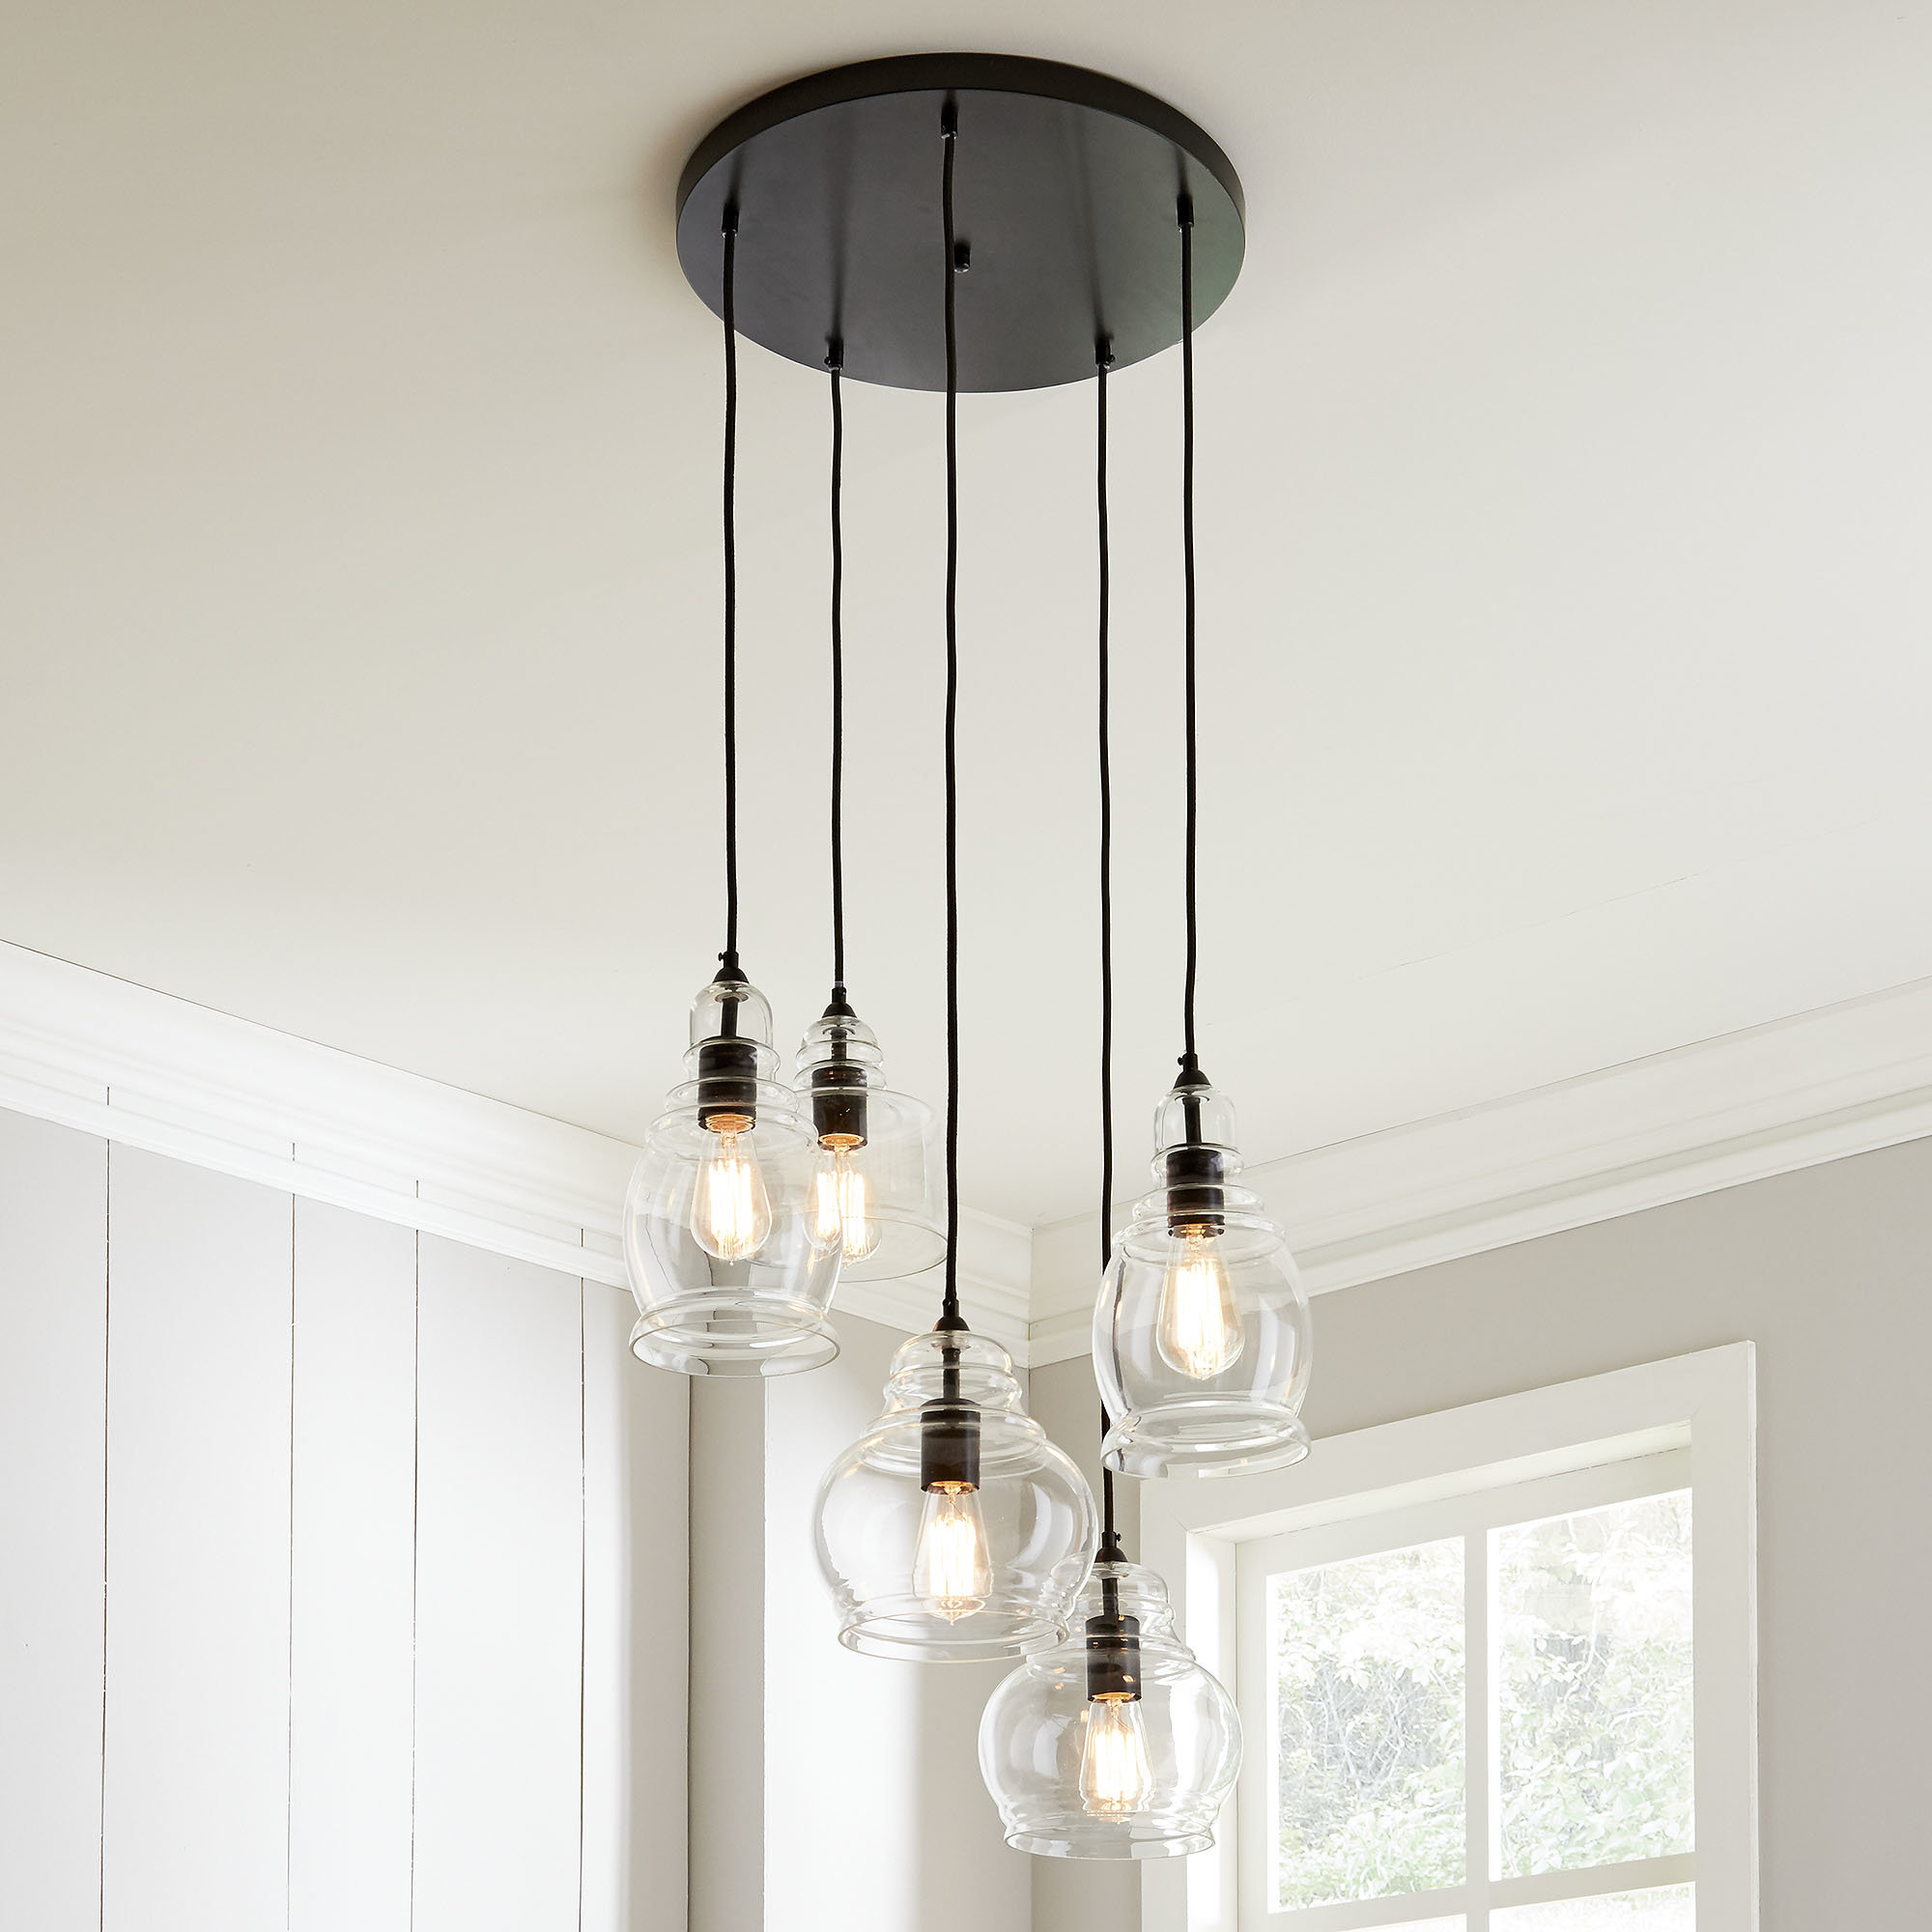 2019 4 – 6 Light Cluster Pendant Lighting You'll Love In 2019 Throughout Schutt 5 Light Cluster Pendants (View 1 of 25)